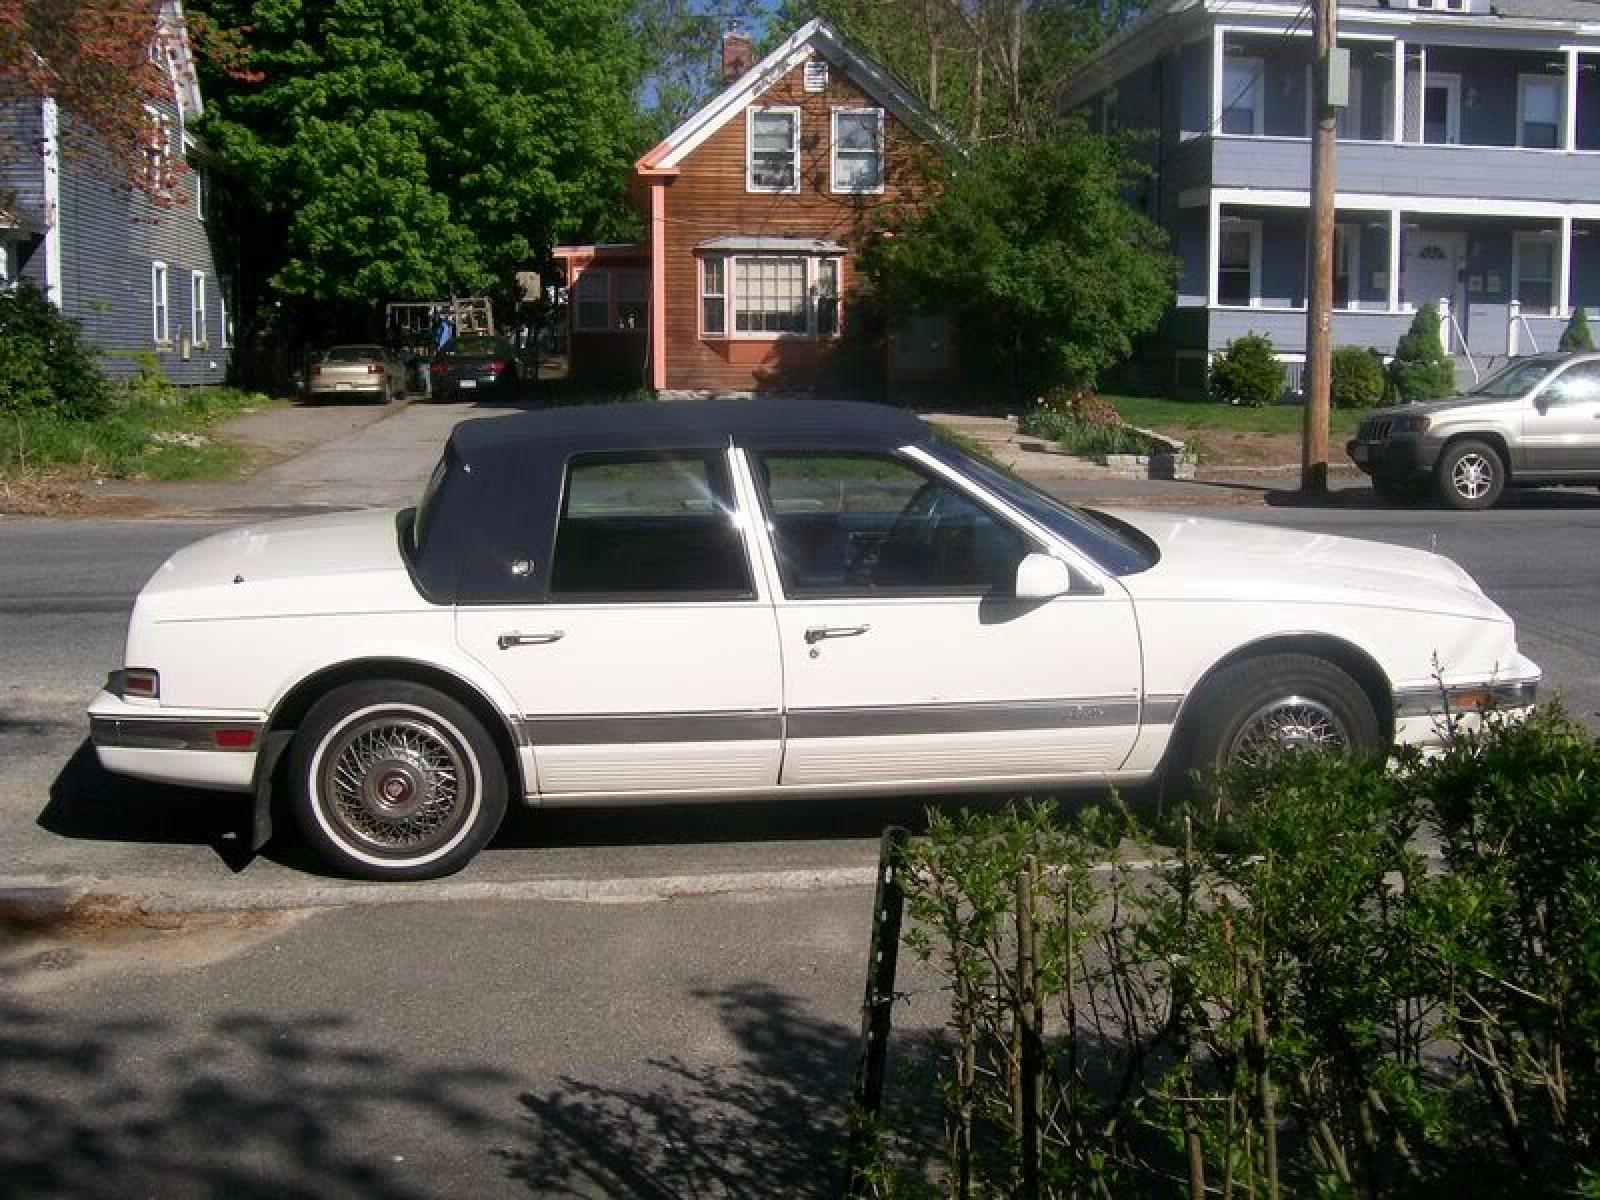 1990 Cadillac Deville Information And Photos Zombiedrive 1992 Infiniti G20 Problems